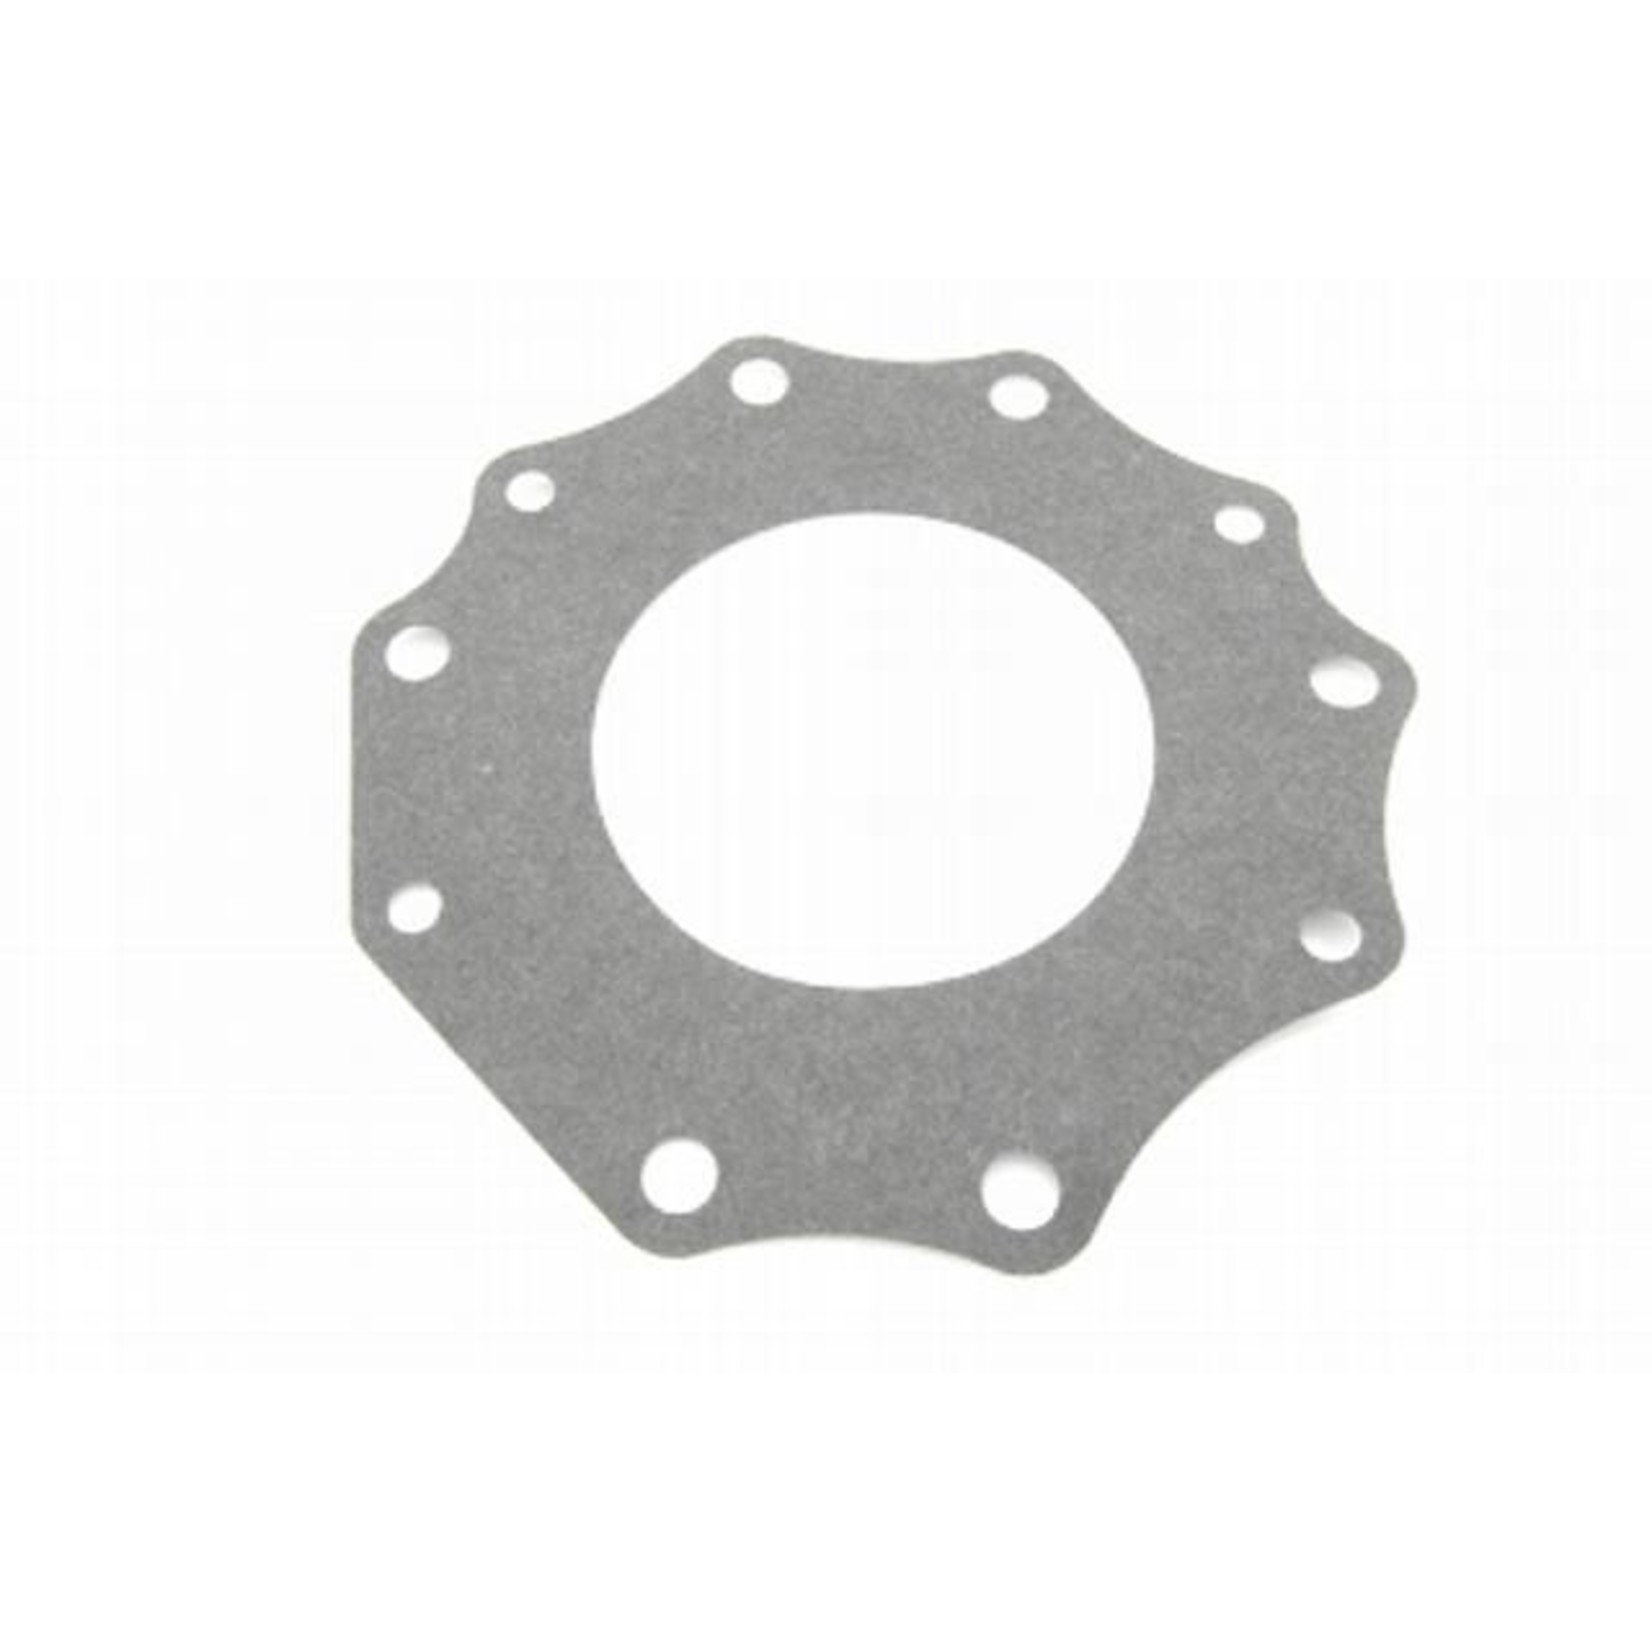 Differential gasket Nr Org: 5411381